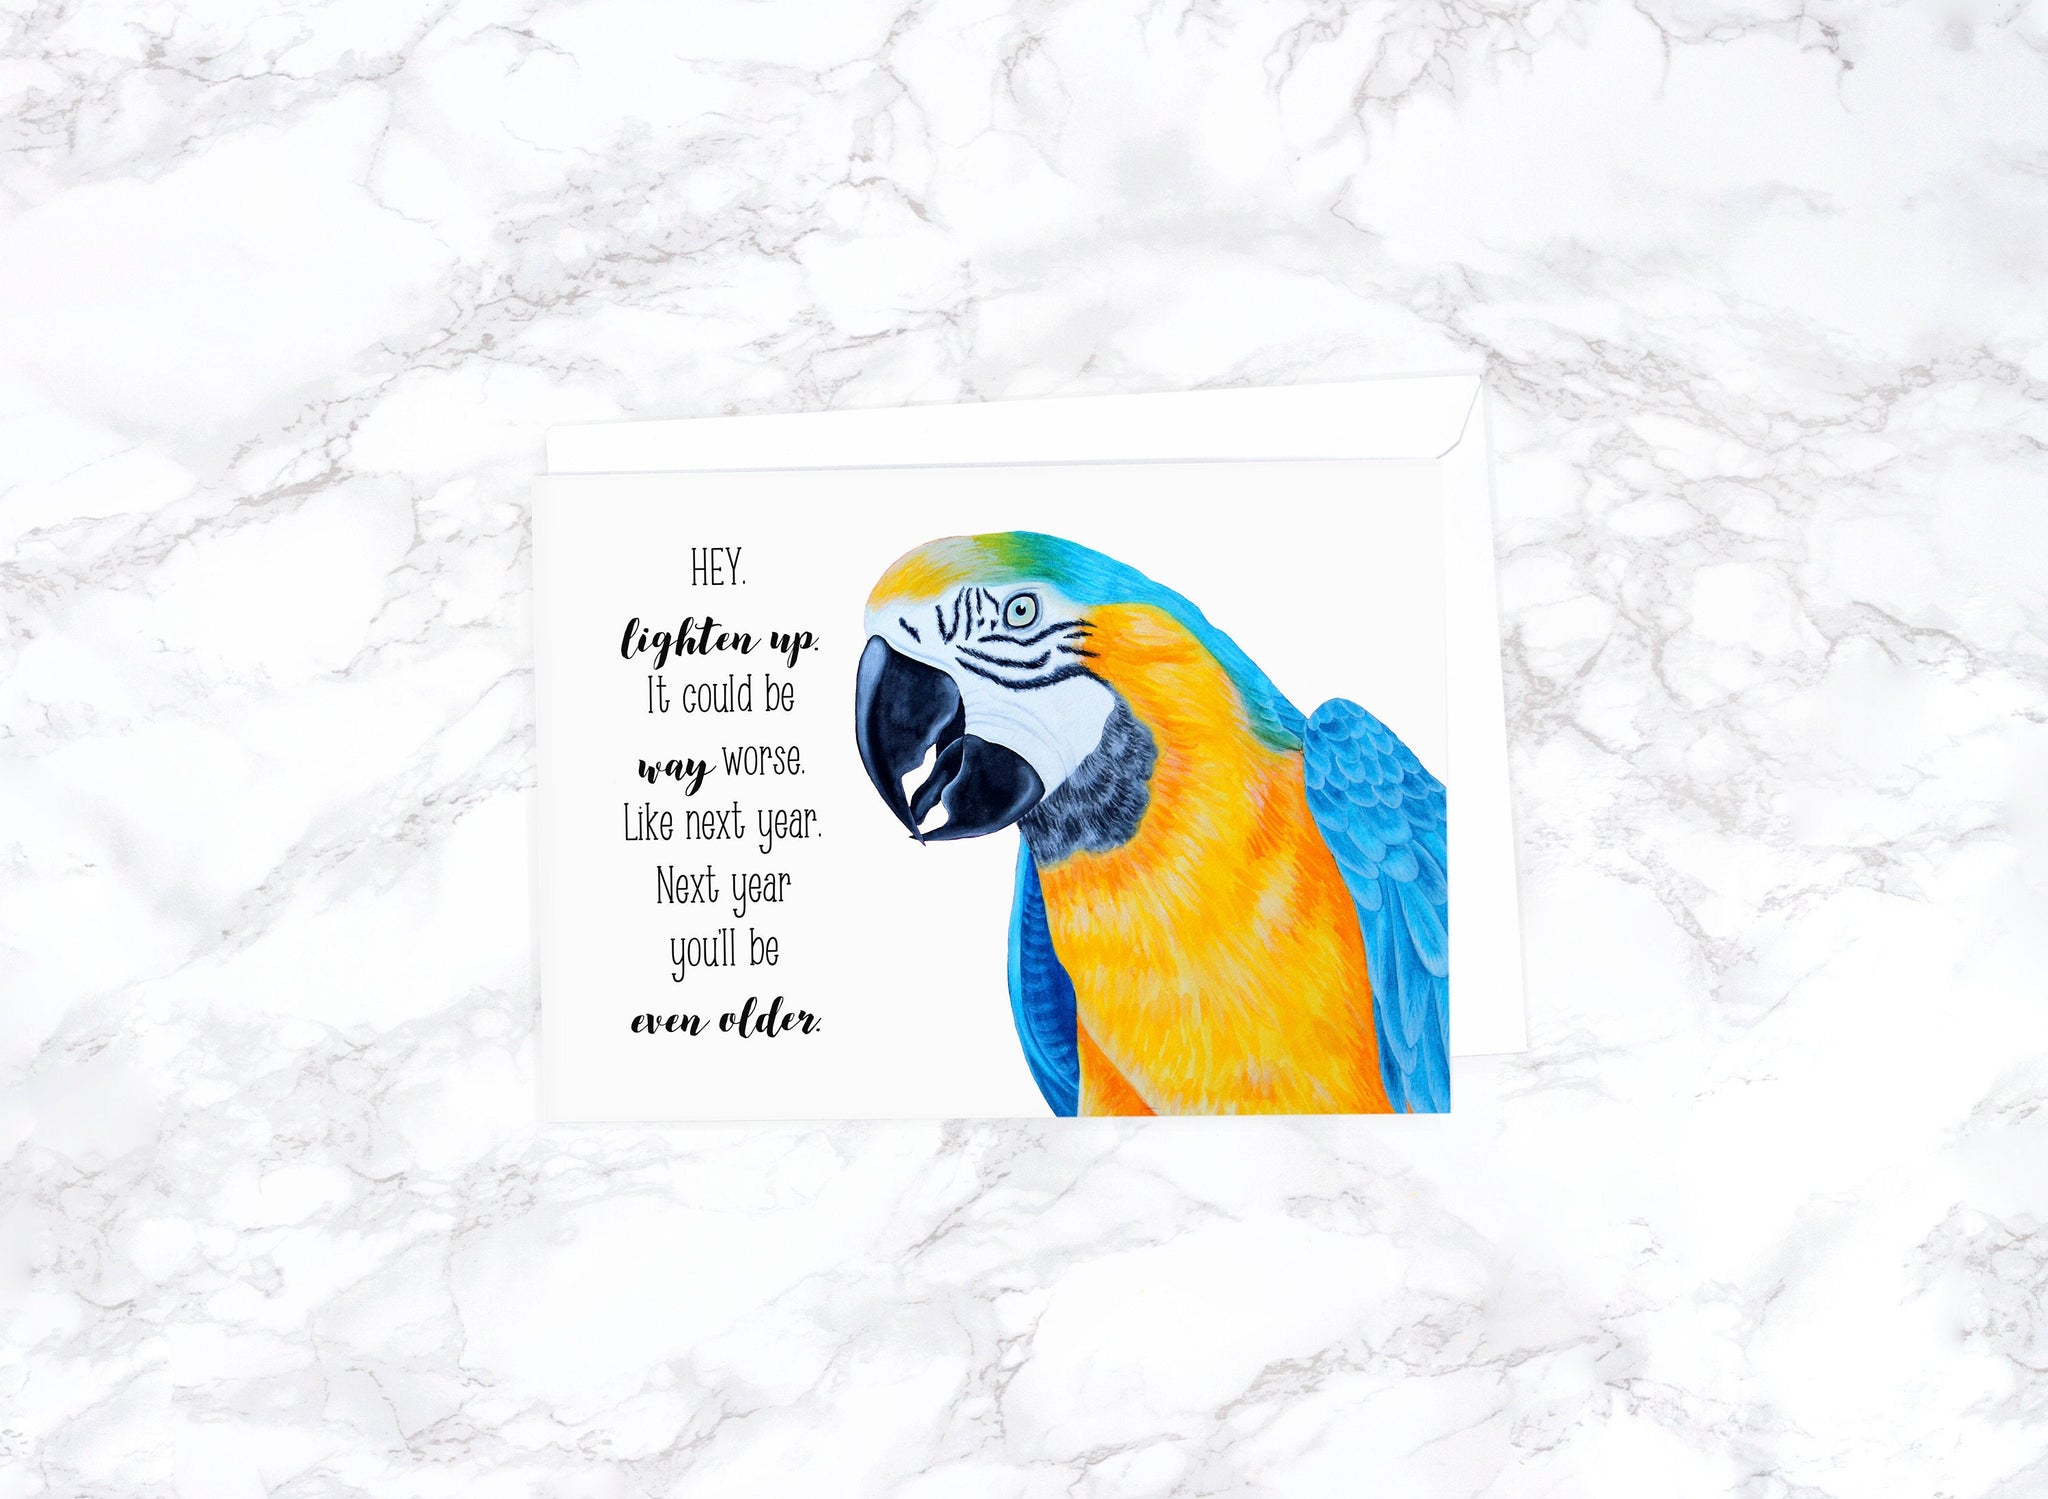 Funny Birthday Card Funny Boyfriend Birthday Animal Birthday Card Old Husband Birthday Card Rude Birthday Card Dad Birthday Card